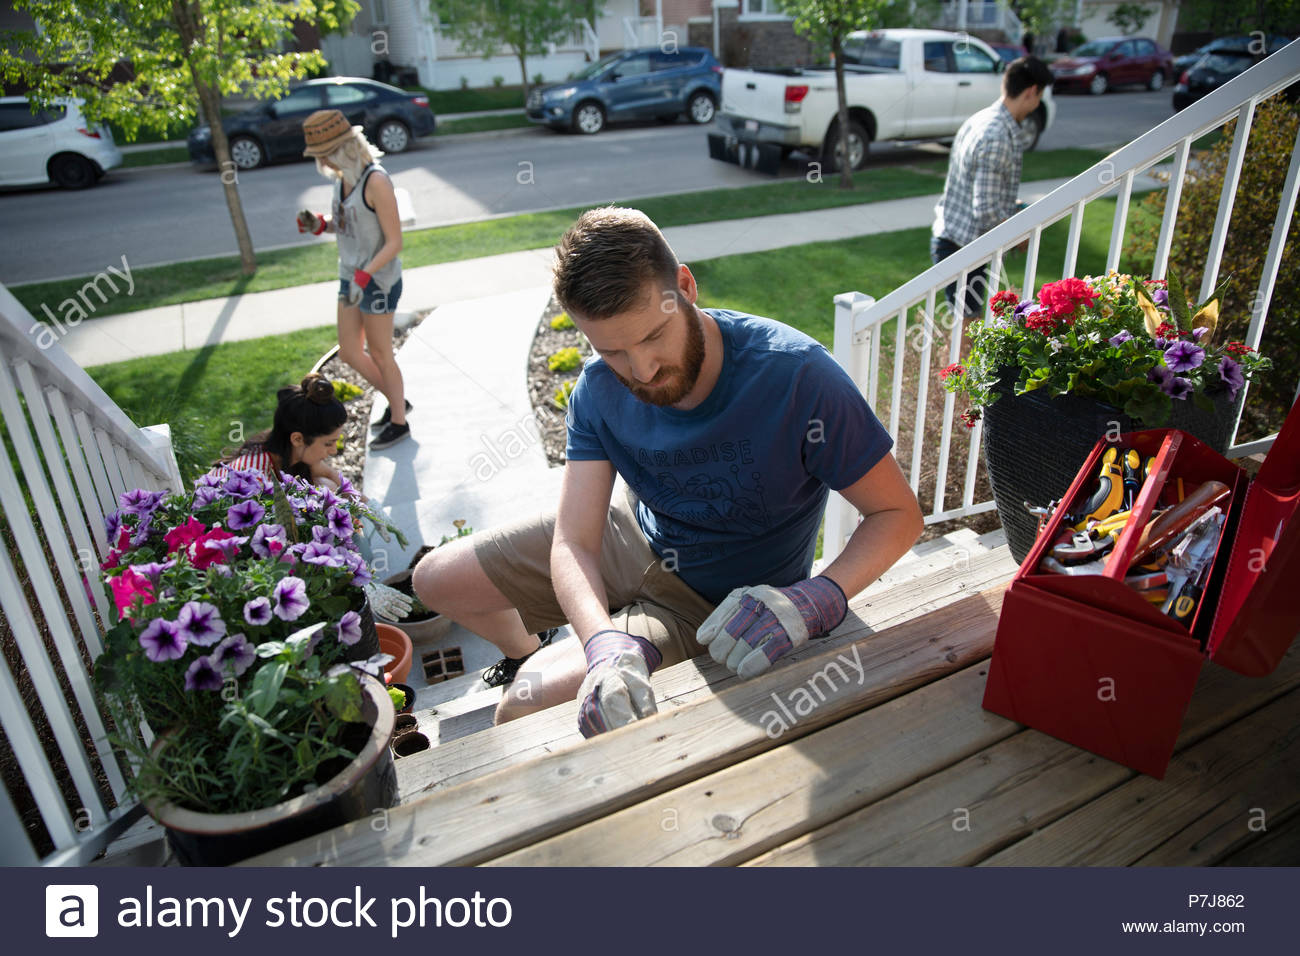 Man fixing wood steps on sunny front stoop - Stock Image